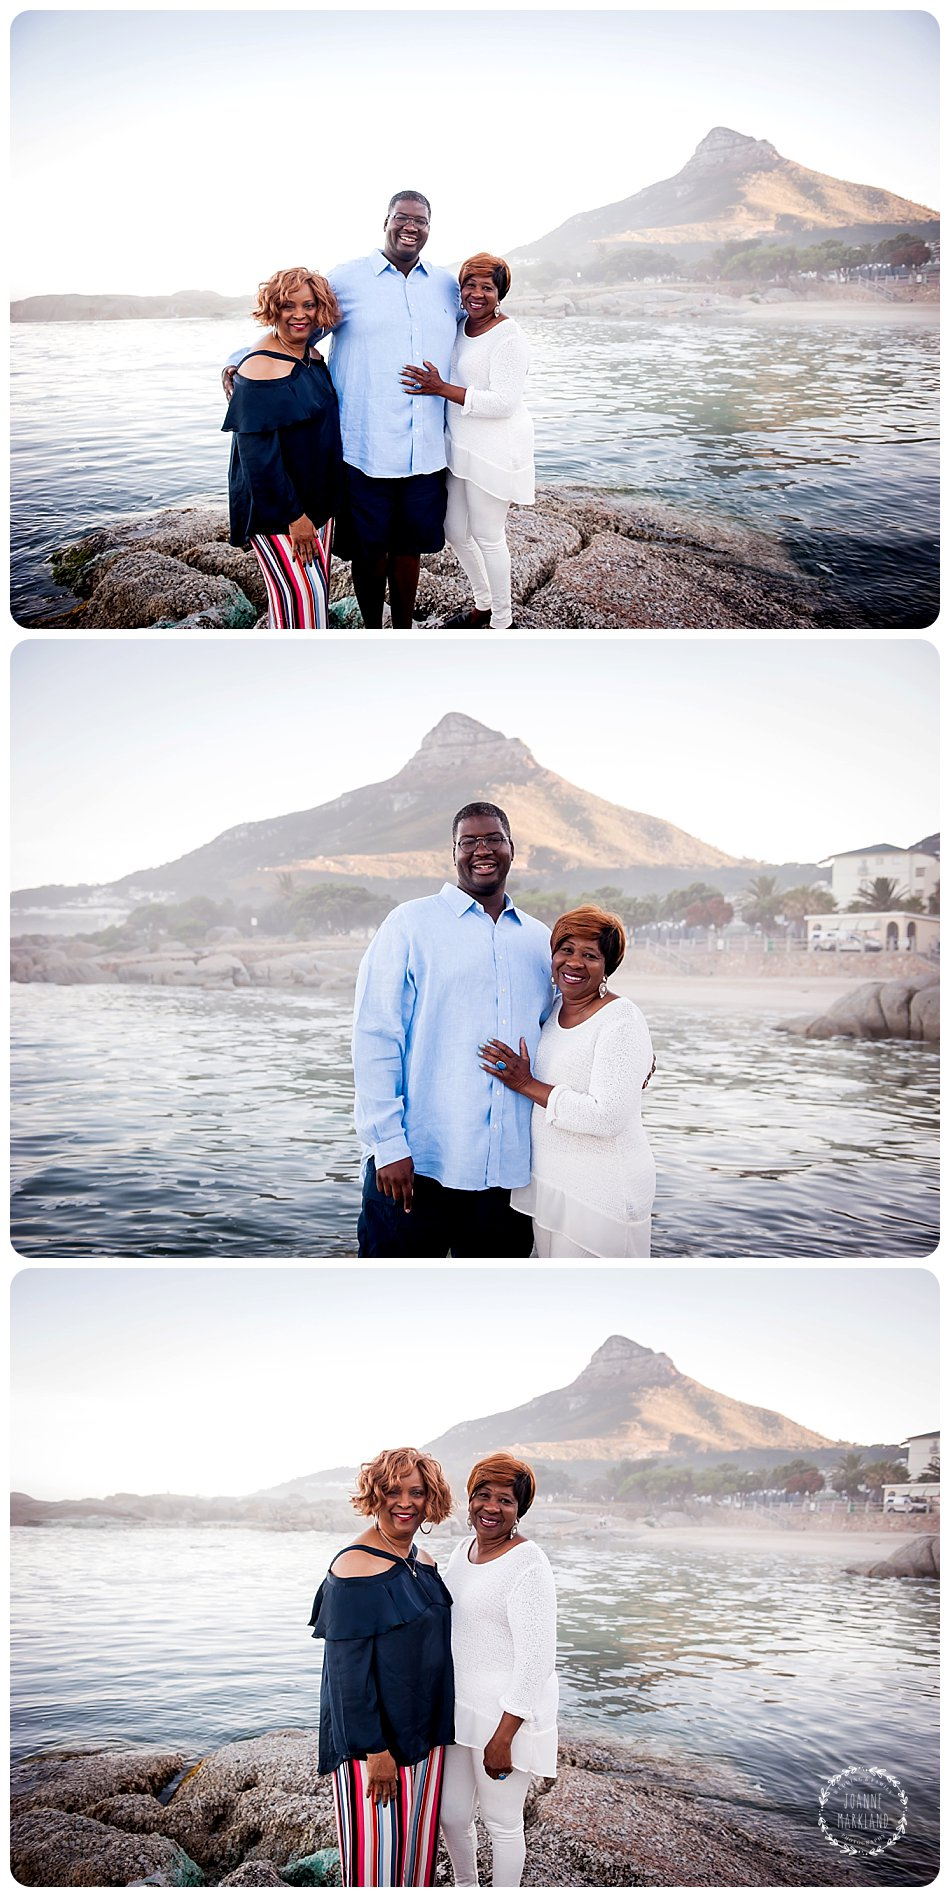 cape town family photographer, family photographer cape town, couple portraits, portraits, couples, beach couple portraits, camps bay, camps bay beach, 12 apostles, holiday snaps, travel holiday photographer